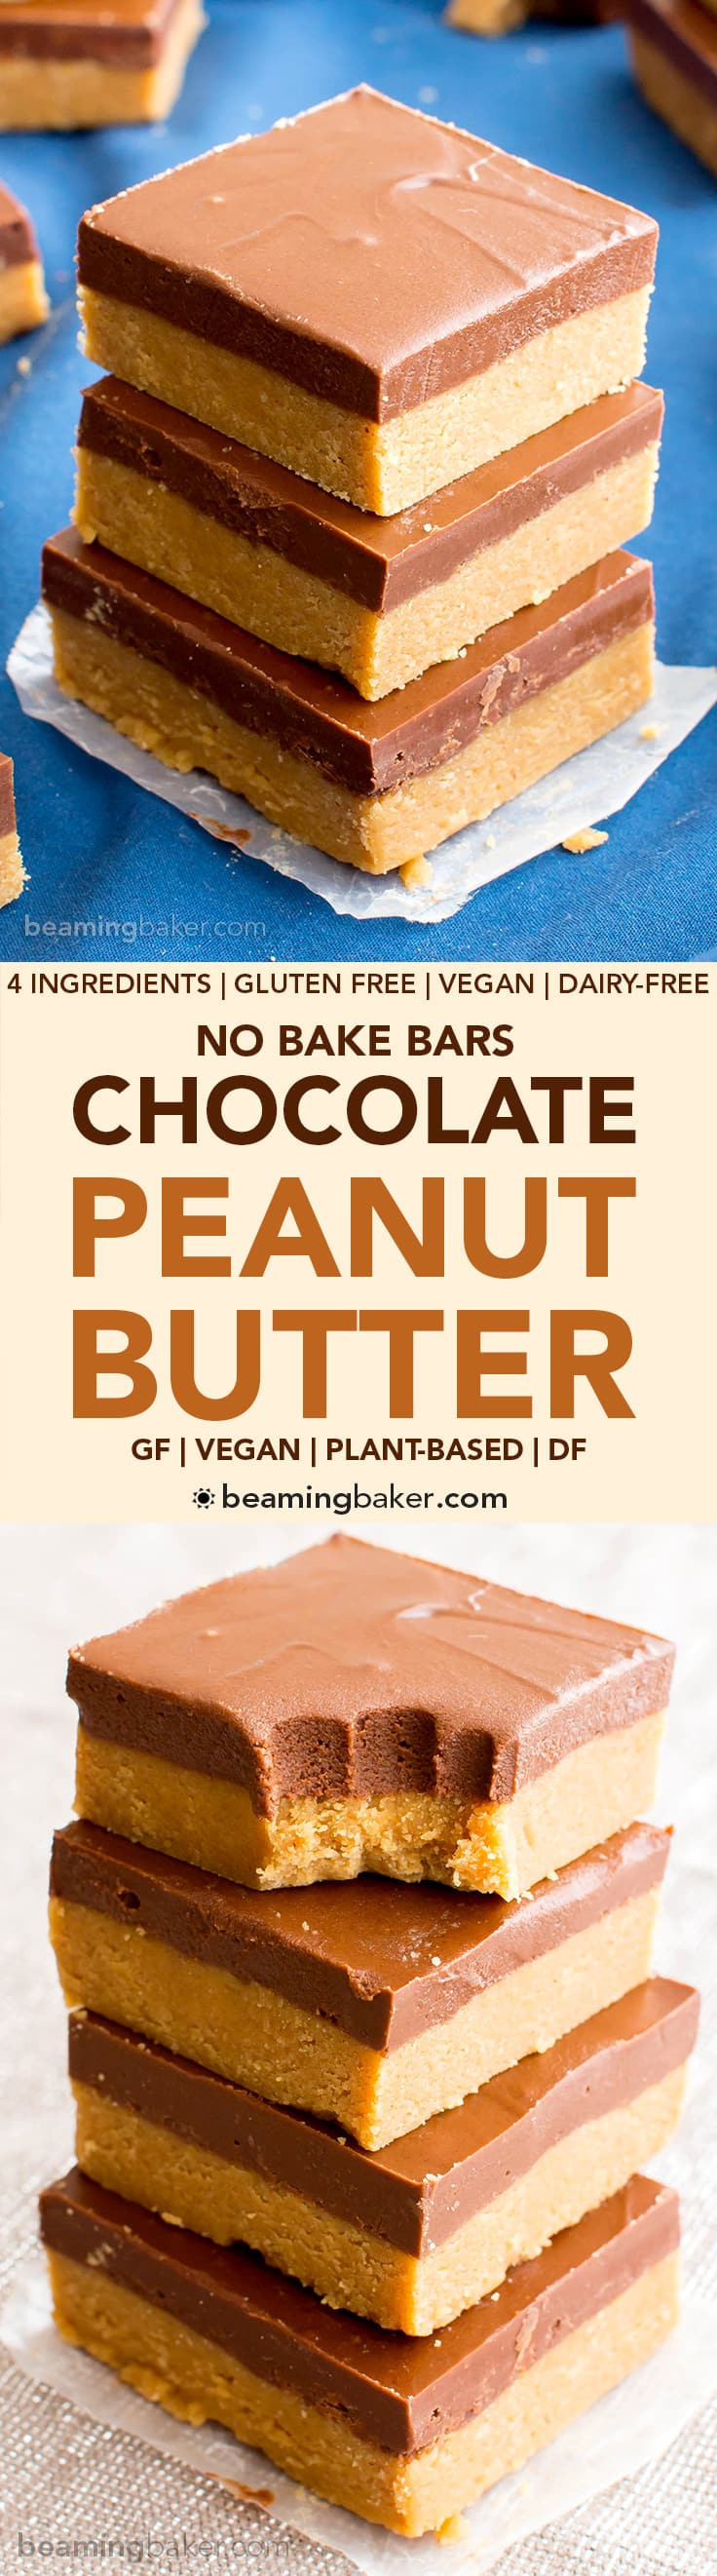 Easy Vegan Chocolate Peanut Butter Bars (V, GF): a 4 ingredient, easy recipe for healthy gluten free peanut butter bars! The best dairy free dessert recipe & no bake! #Vegan #GlutenFree #PeanutButter #DairyFree #Healthy | Recipe at BeamingBaker.com